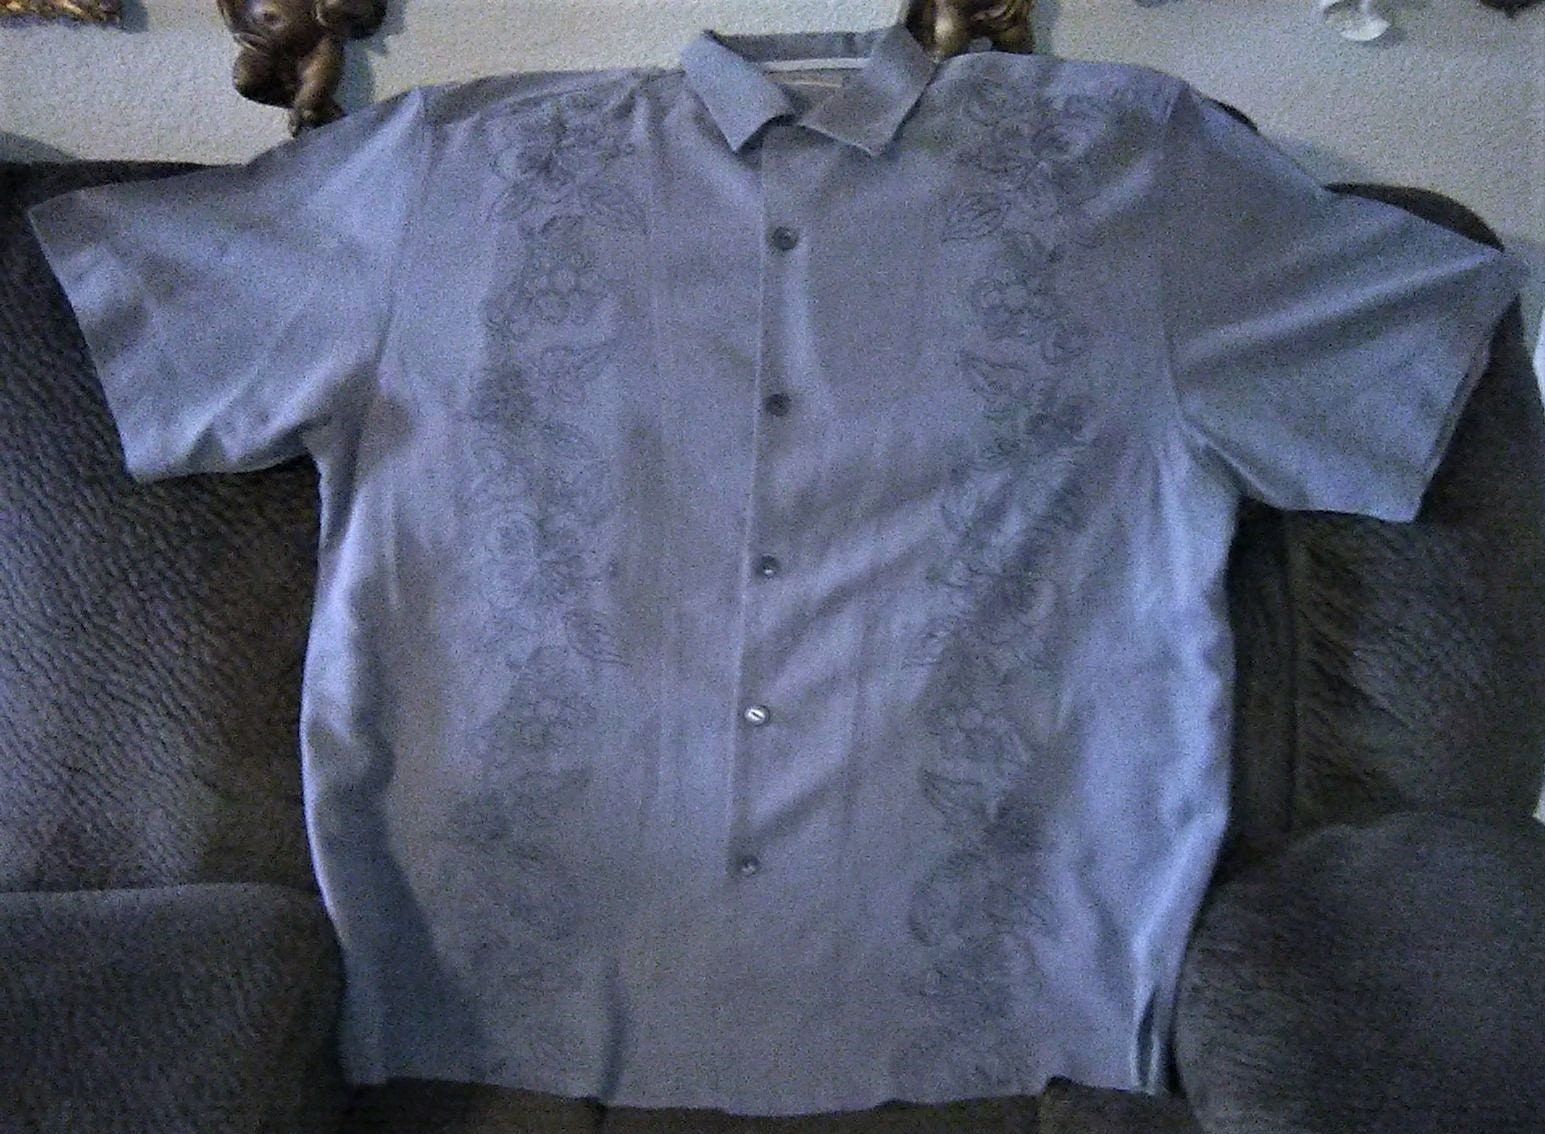 Vintage Tommy Bahamas Men's Vintage Tommy Bahamas Men's Hibiscus Floral Front Full Button Closure La This is such a nice Tommy Bahamas shirt, Size large Men's Hibiscus Floral lined down the front. Guayabera style summer time tropical shirt. Hemmed short sleeves. Grey charcoal ash color. You will love it no snags tears rips or bad smell. non smoker.All sales are final and as-is We list many items daily to our ETSY AND PATTERN SHOPS. Thank you for looking